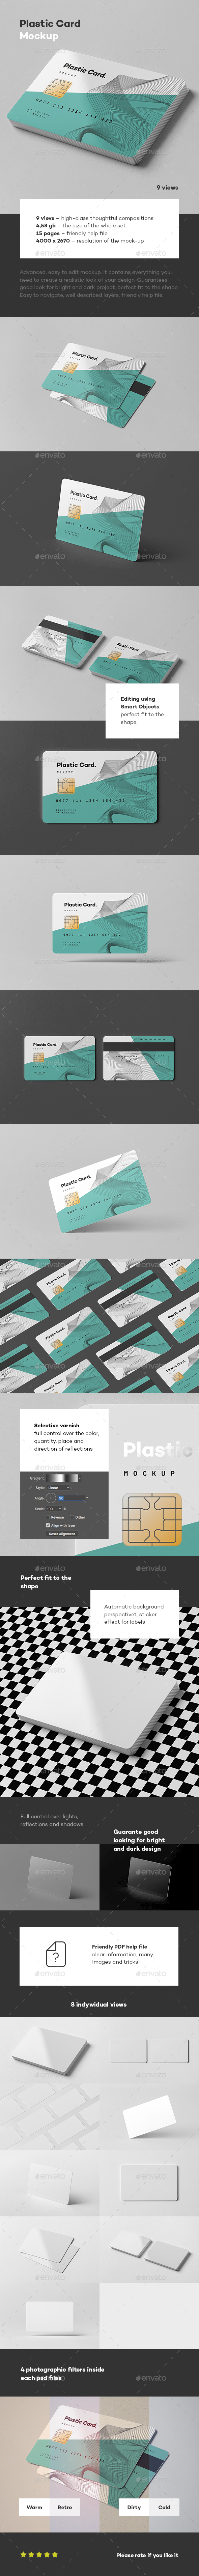 Plastic Card Mock-up - Business Cards Print